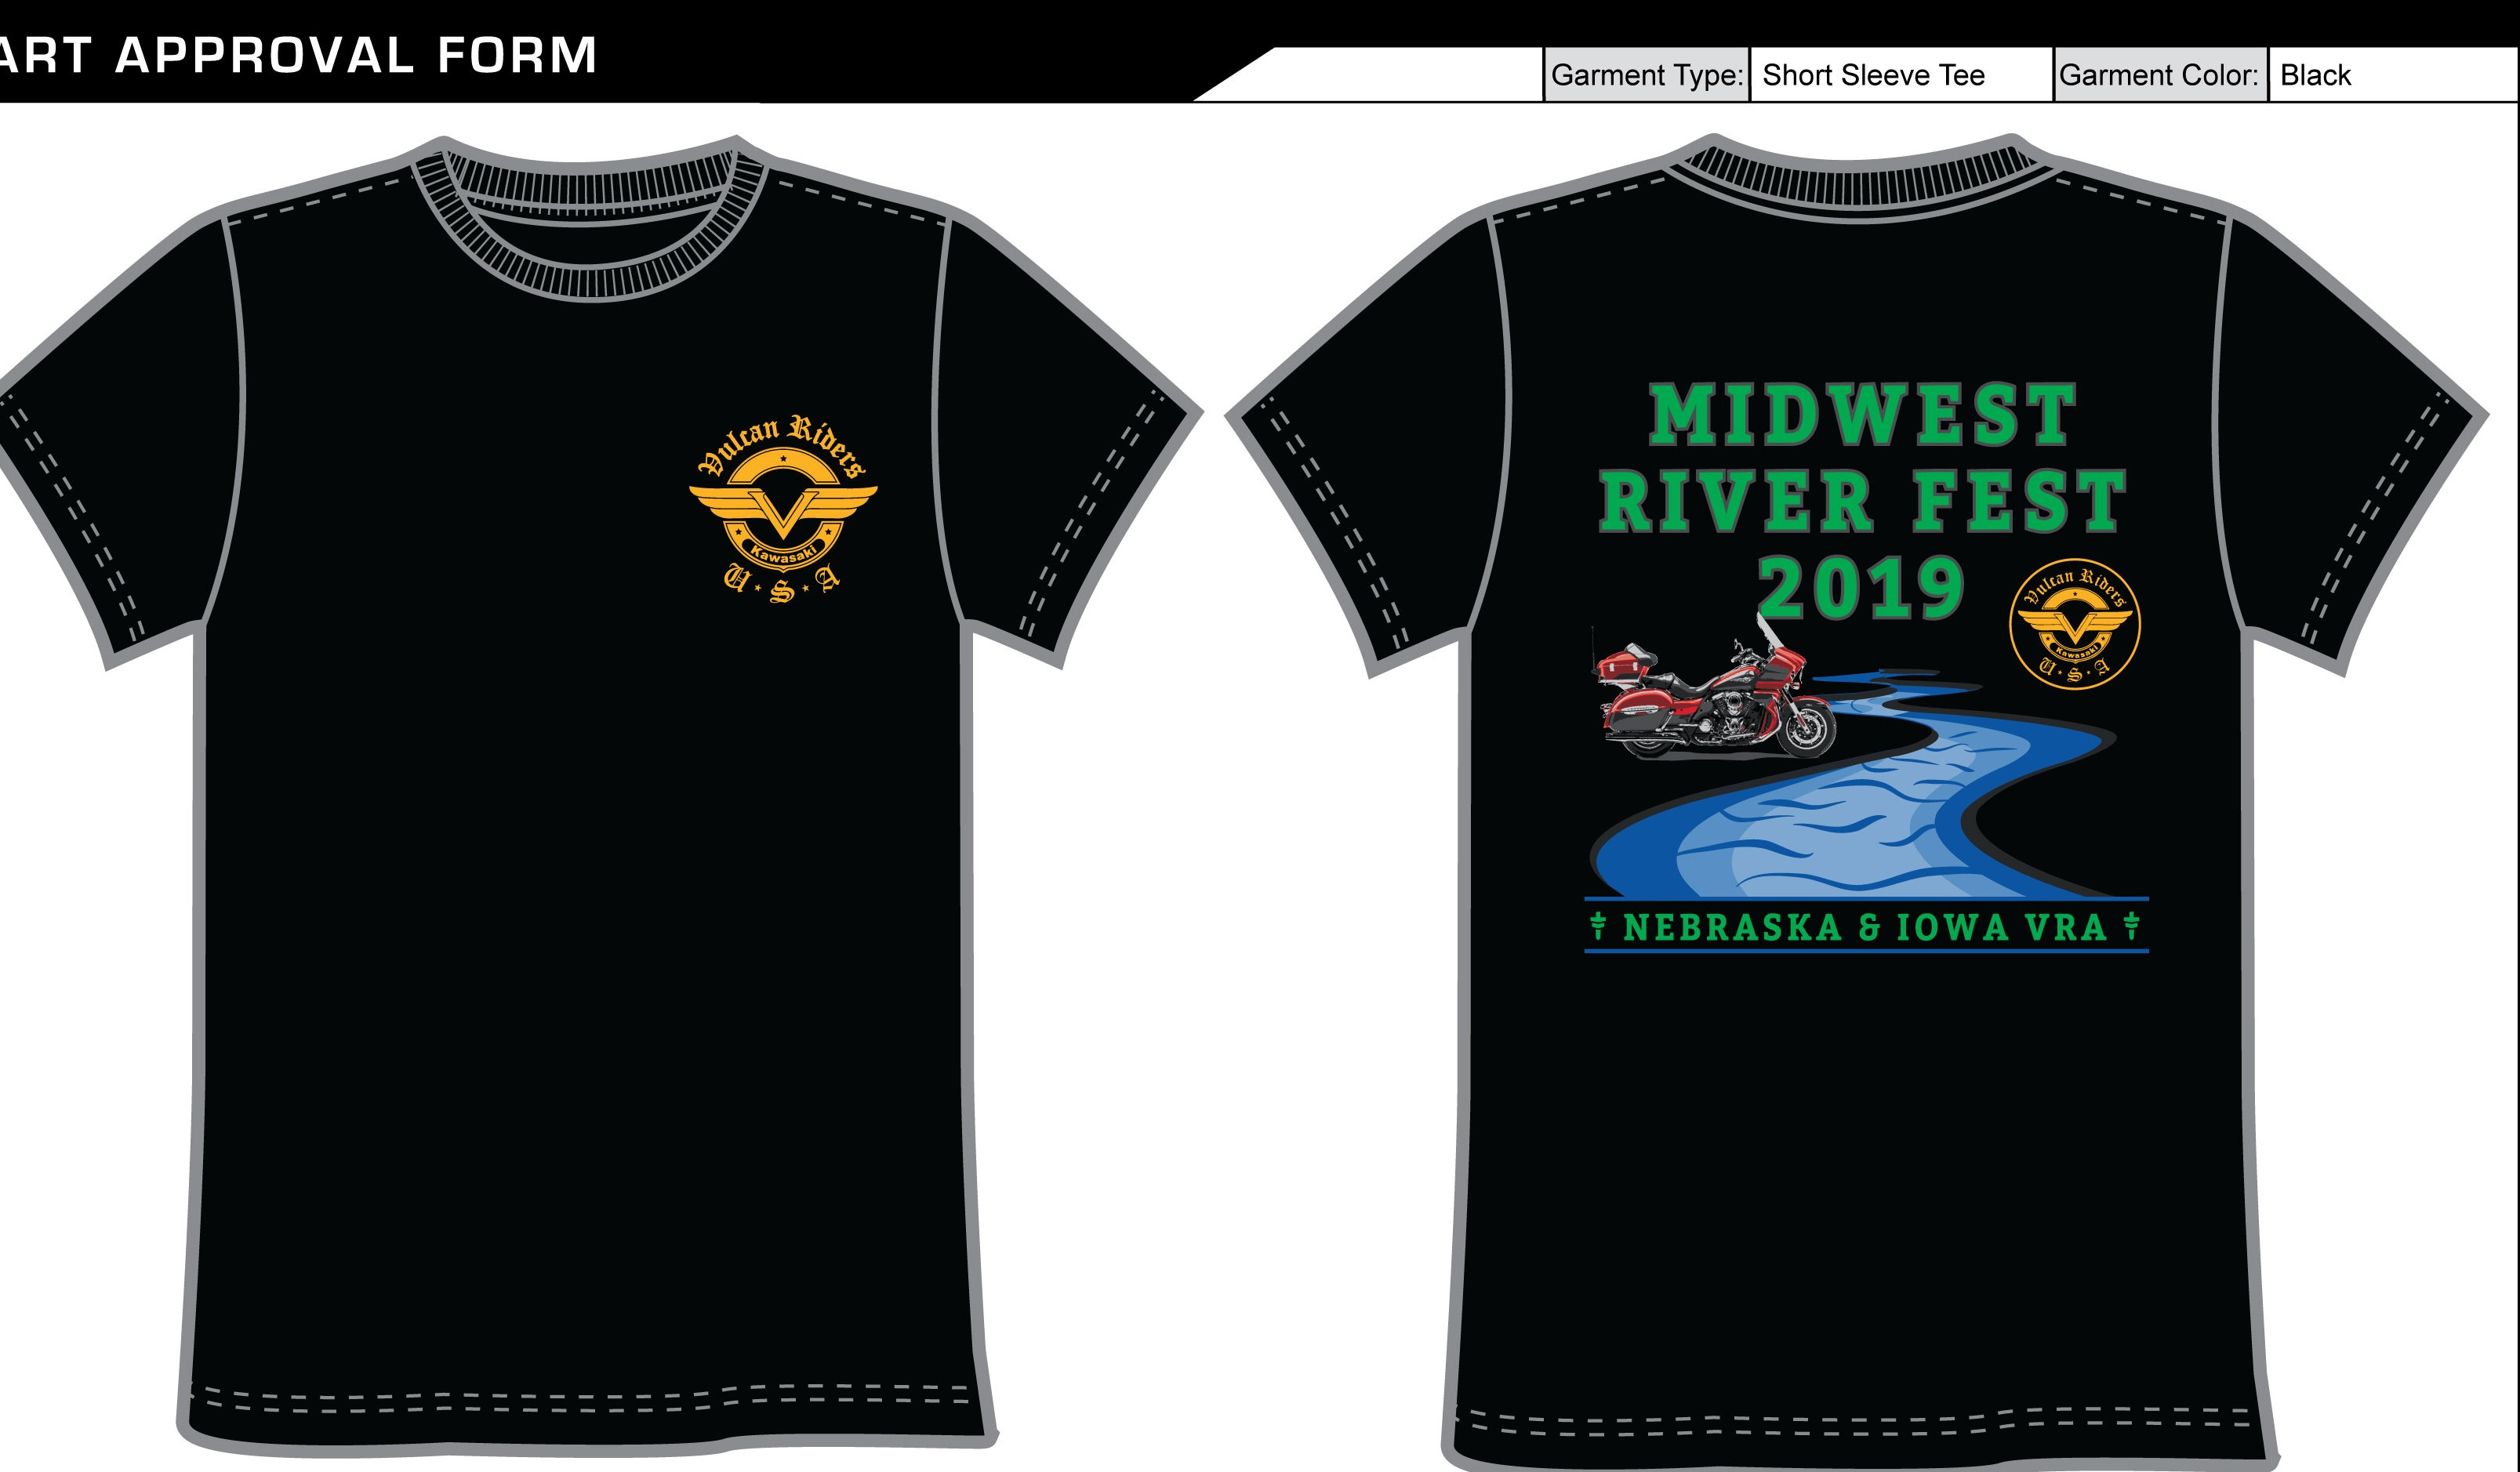 2019 VRA east rally shirts